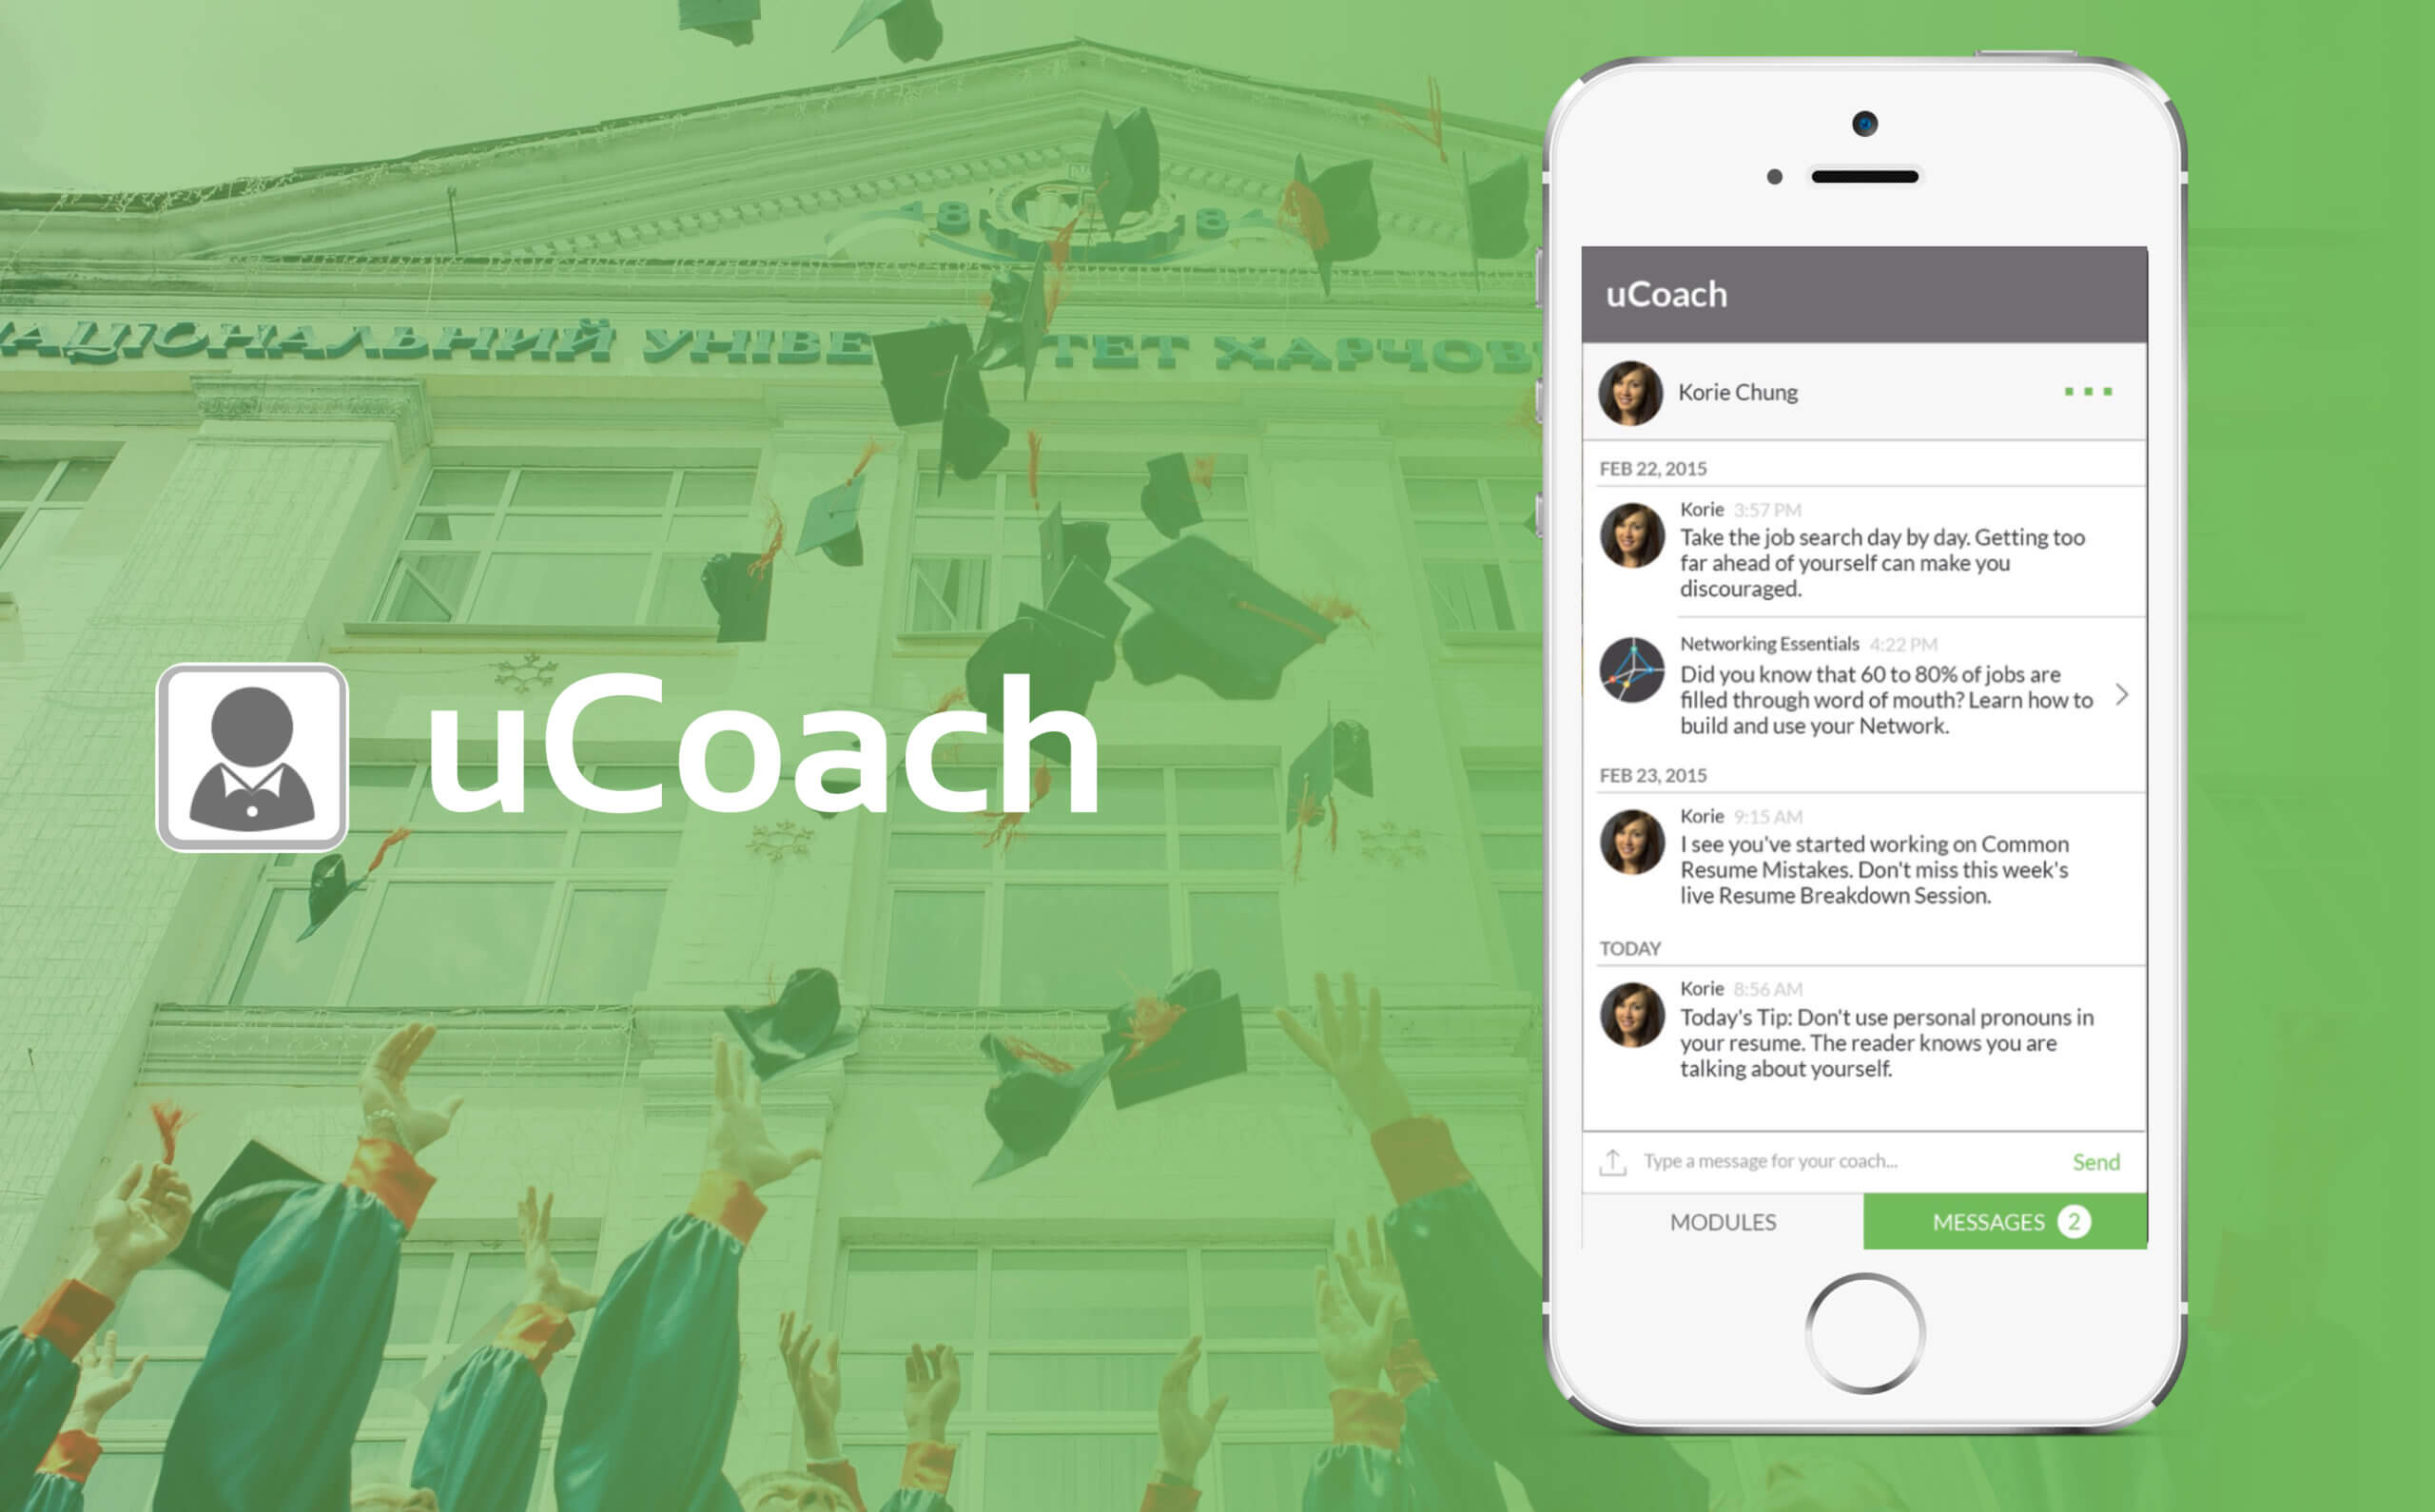 uCoach featured image